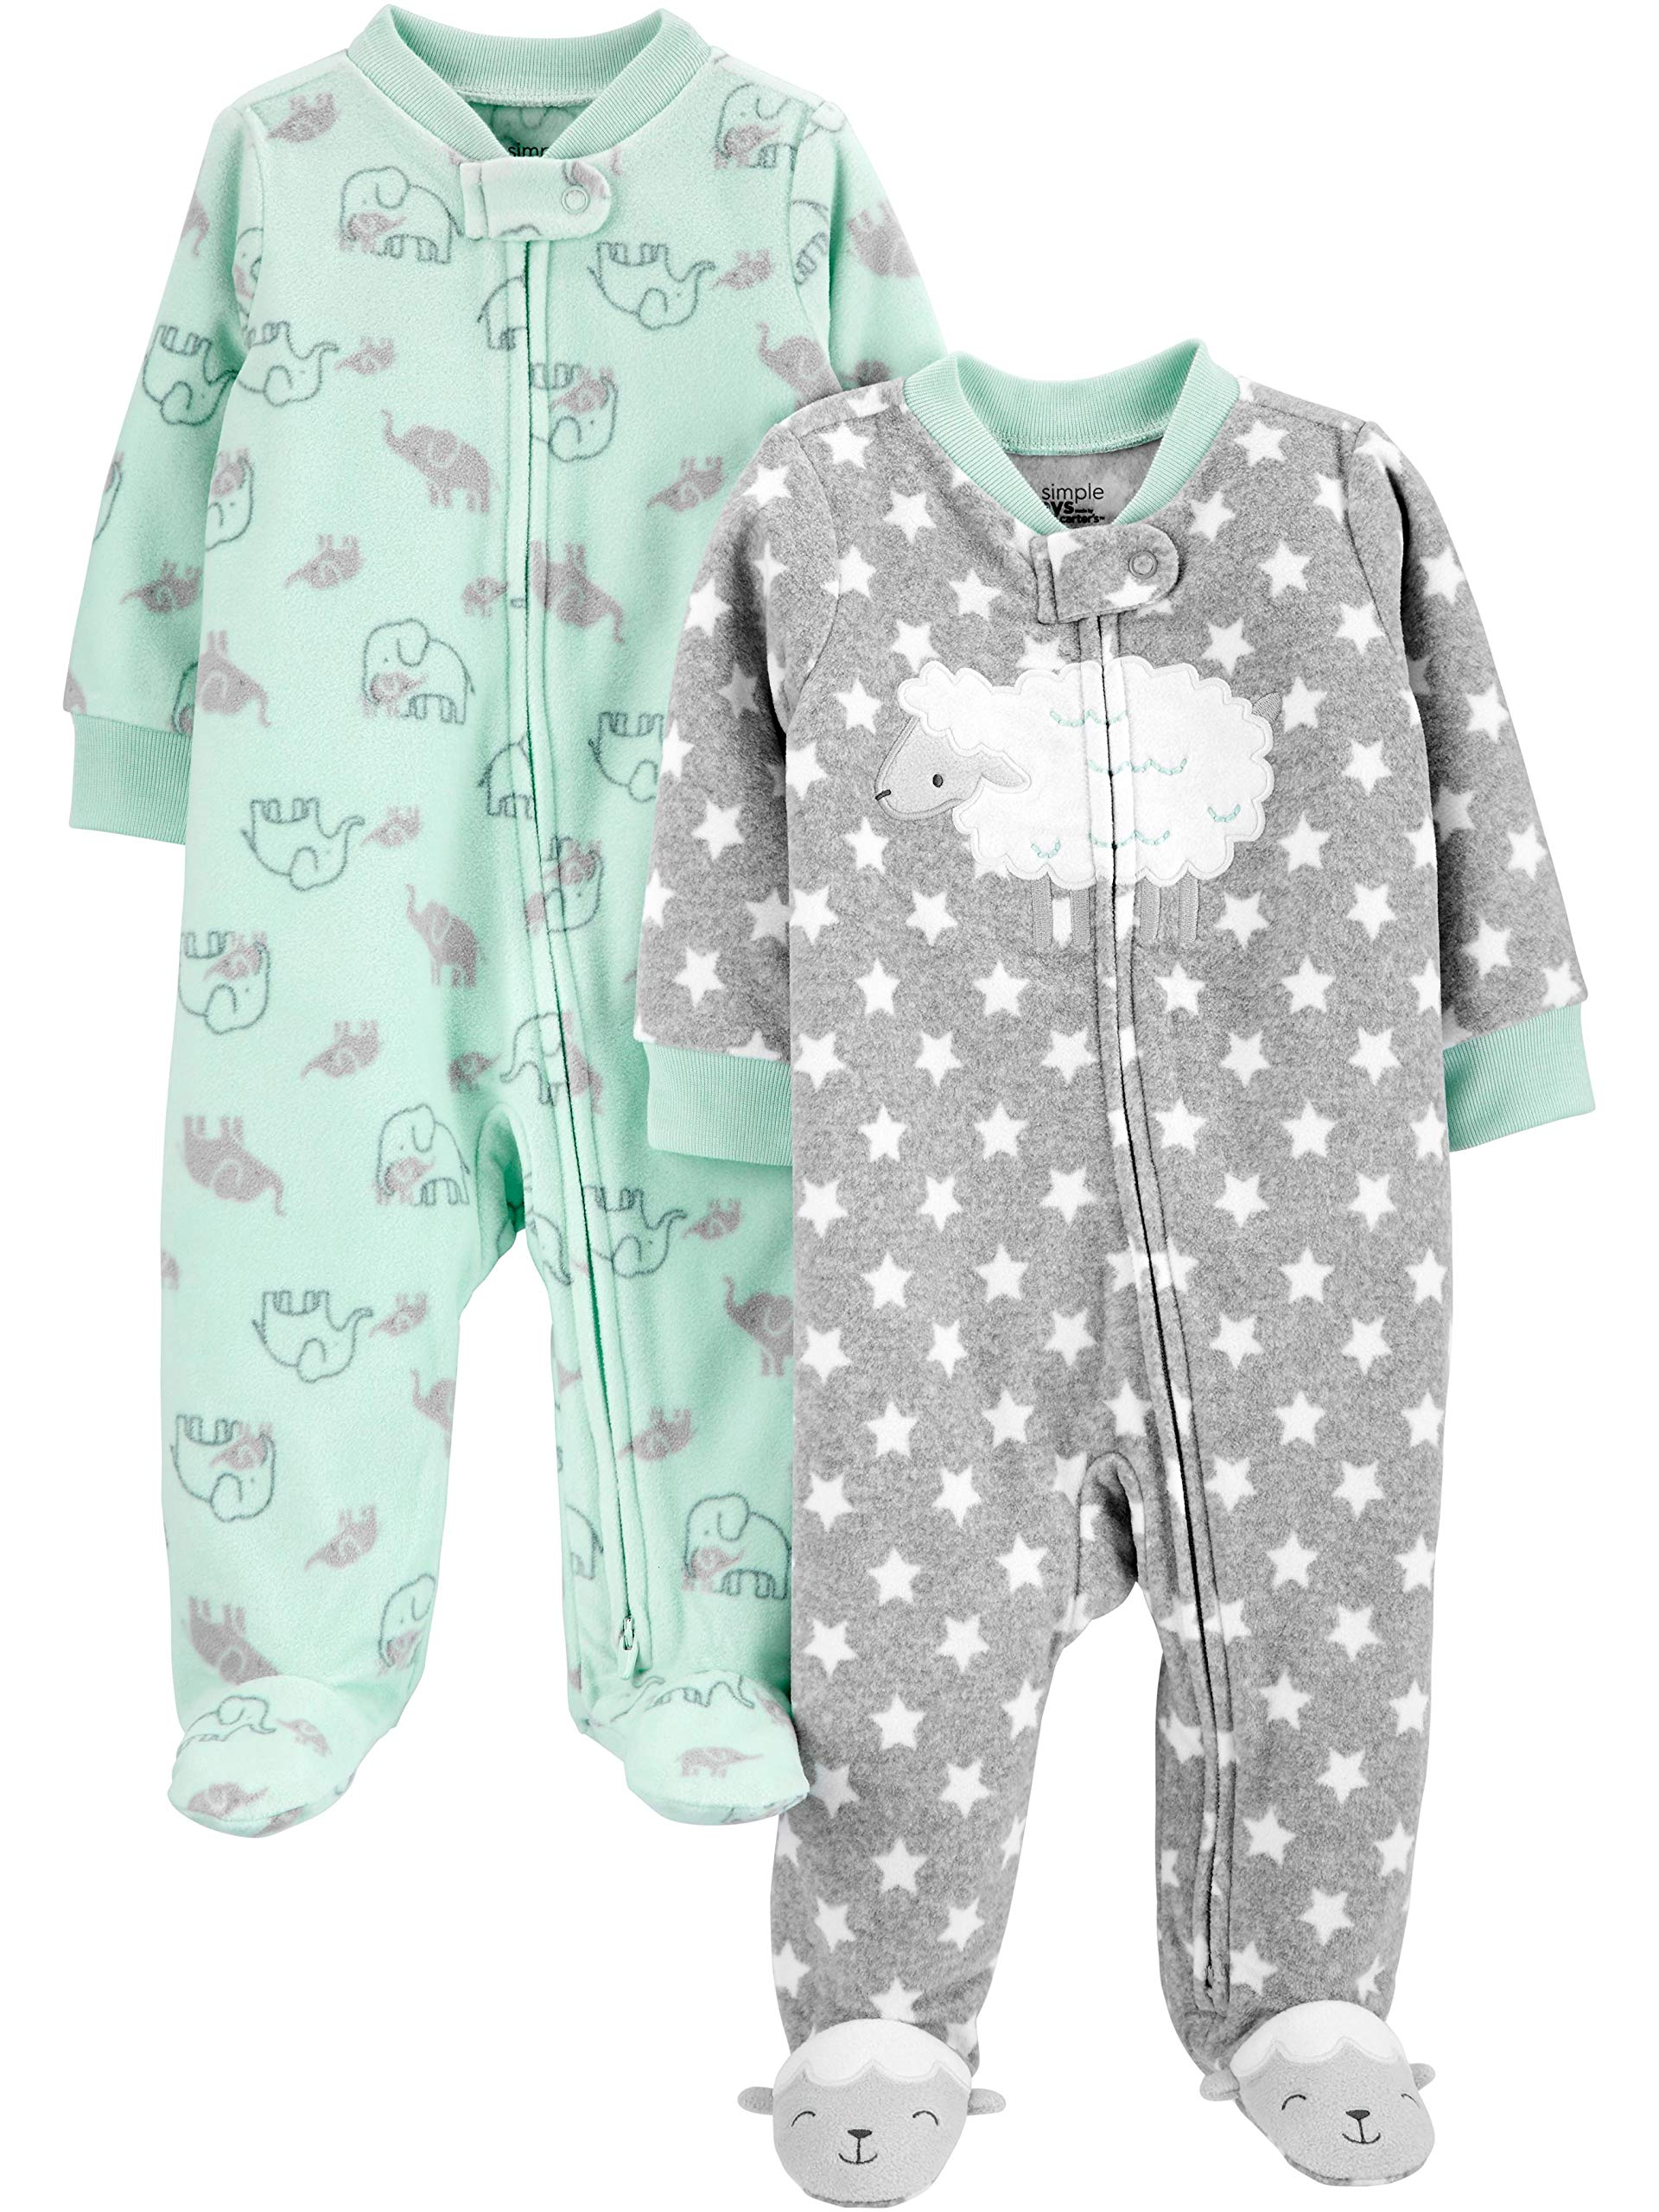 Simple Joys by Carters Unisex Baby 2-Pack Fleece Footed Sleep and Play Infant-and-Toddler-Sleepers